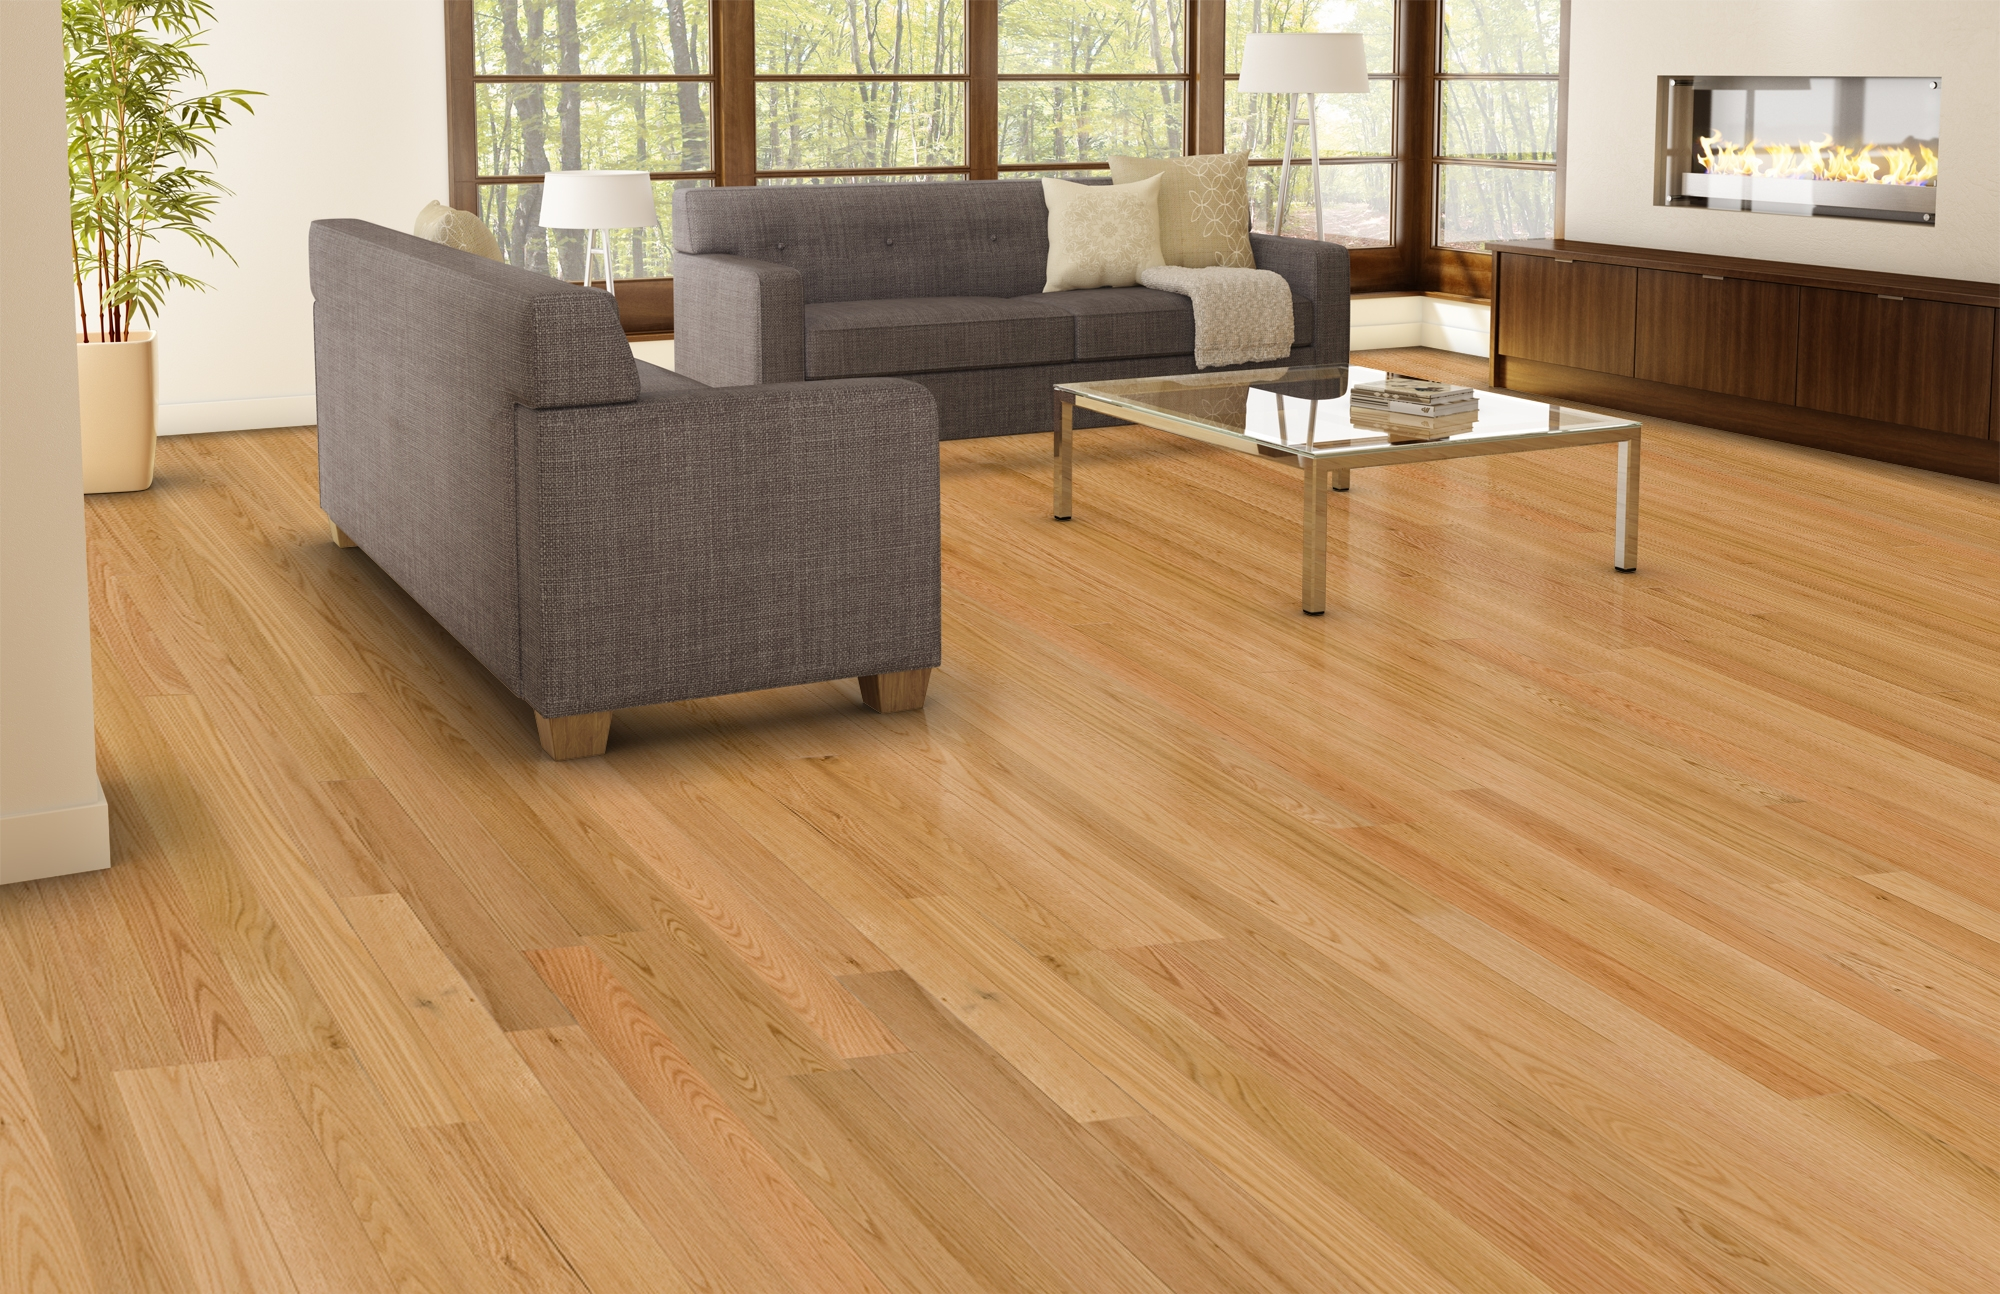 Floating Oak Wood Flooringnatural ambiance red oak select better lauzon hardwood flooring